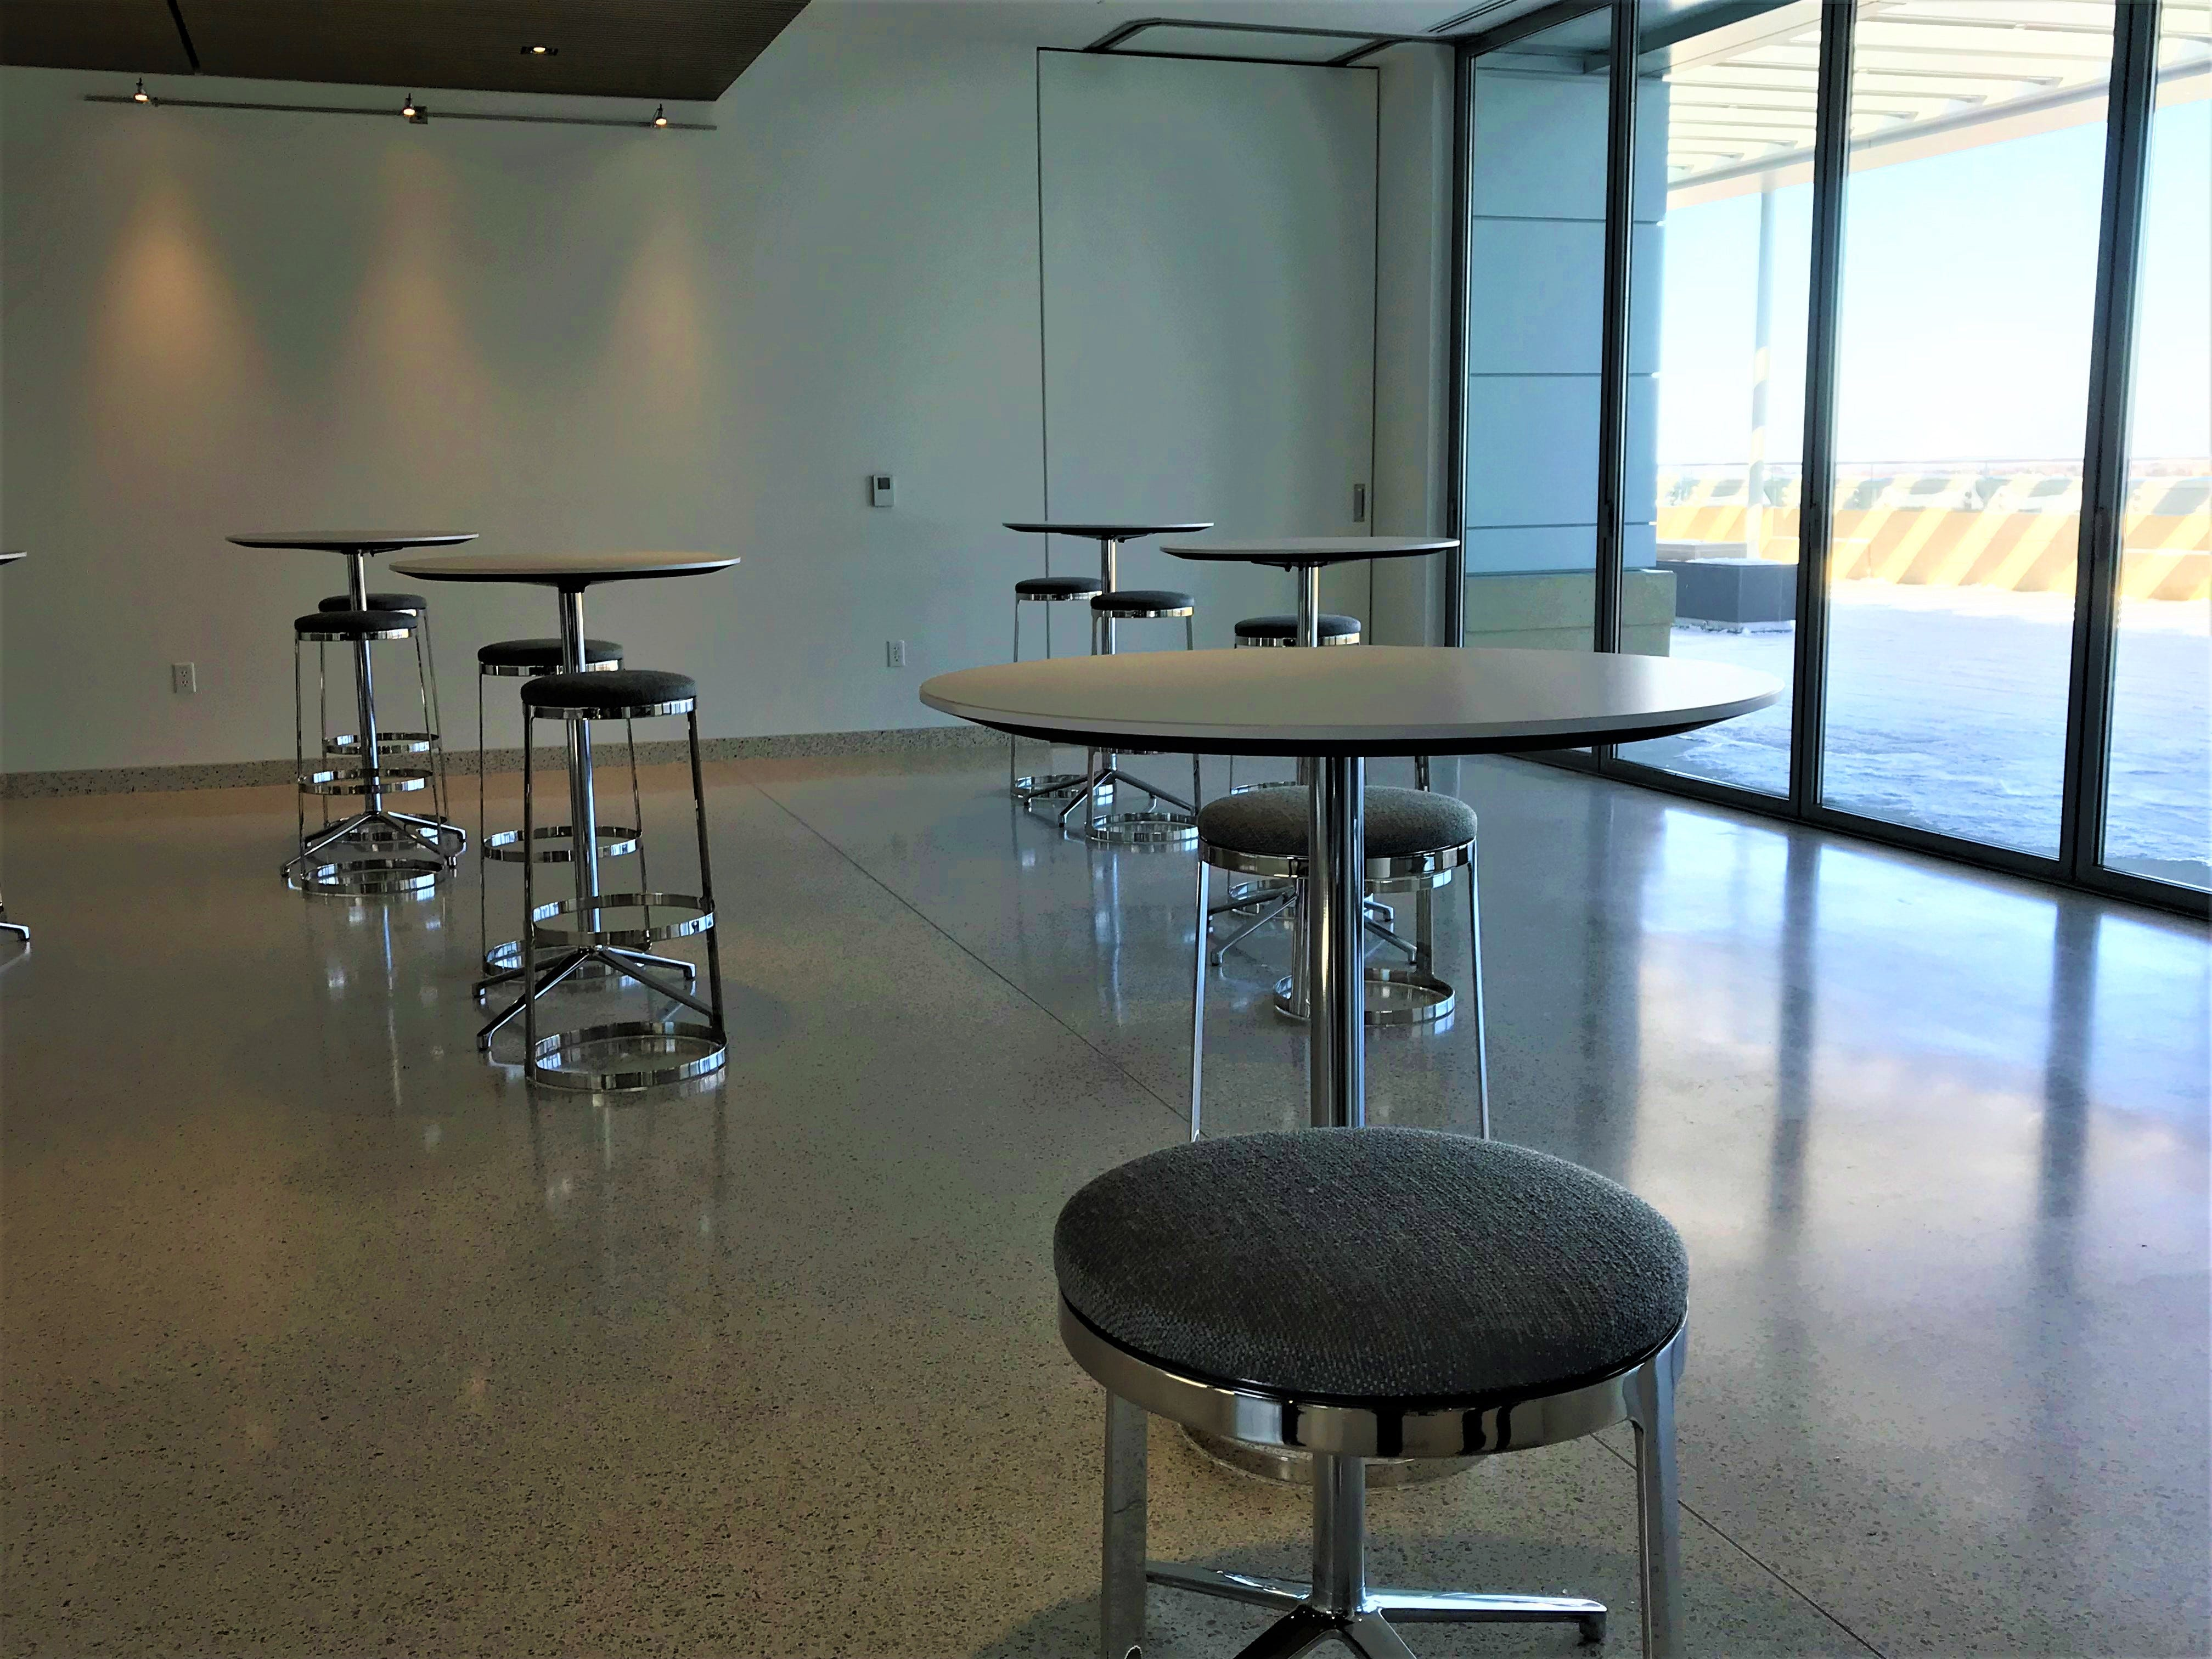 Tables are set up in a multi-purpose room in the new Sentry building. The glass can be removed for large gatherings to include a patio space.